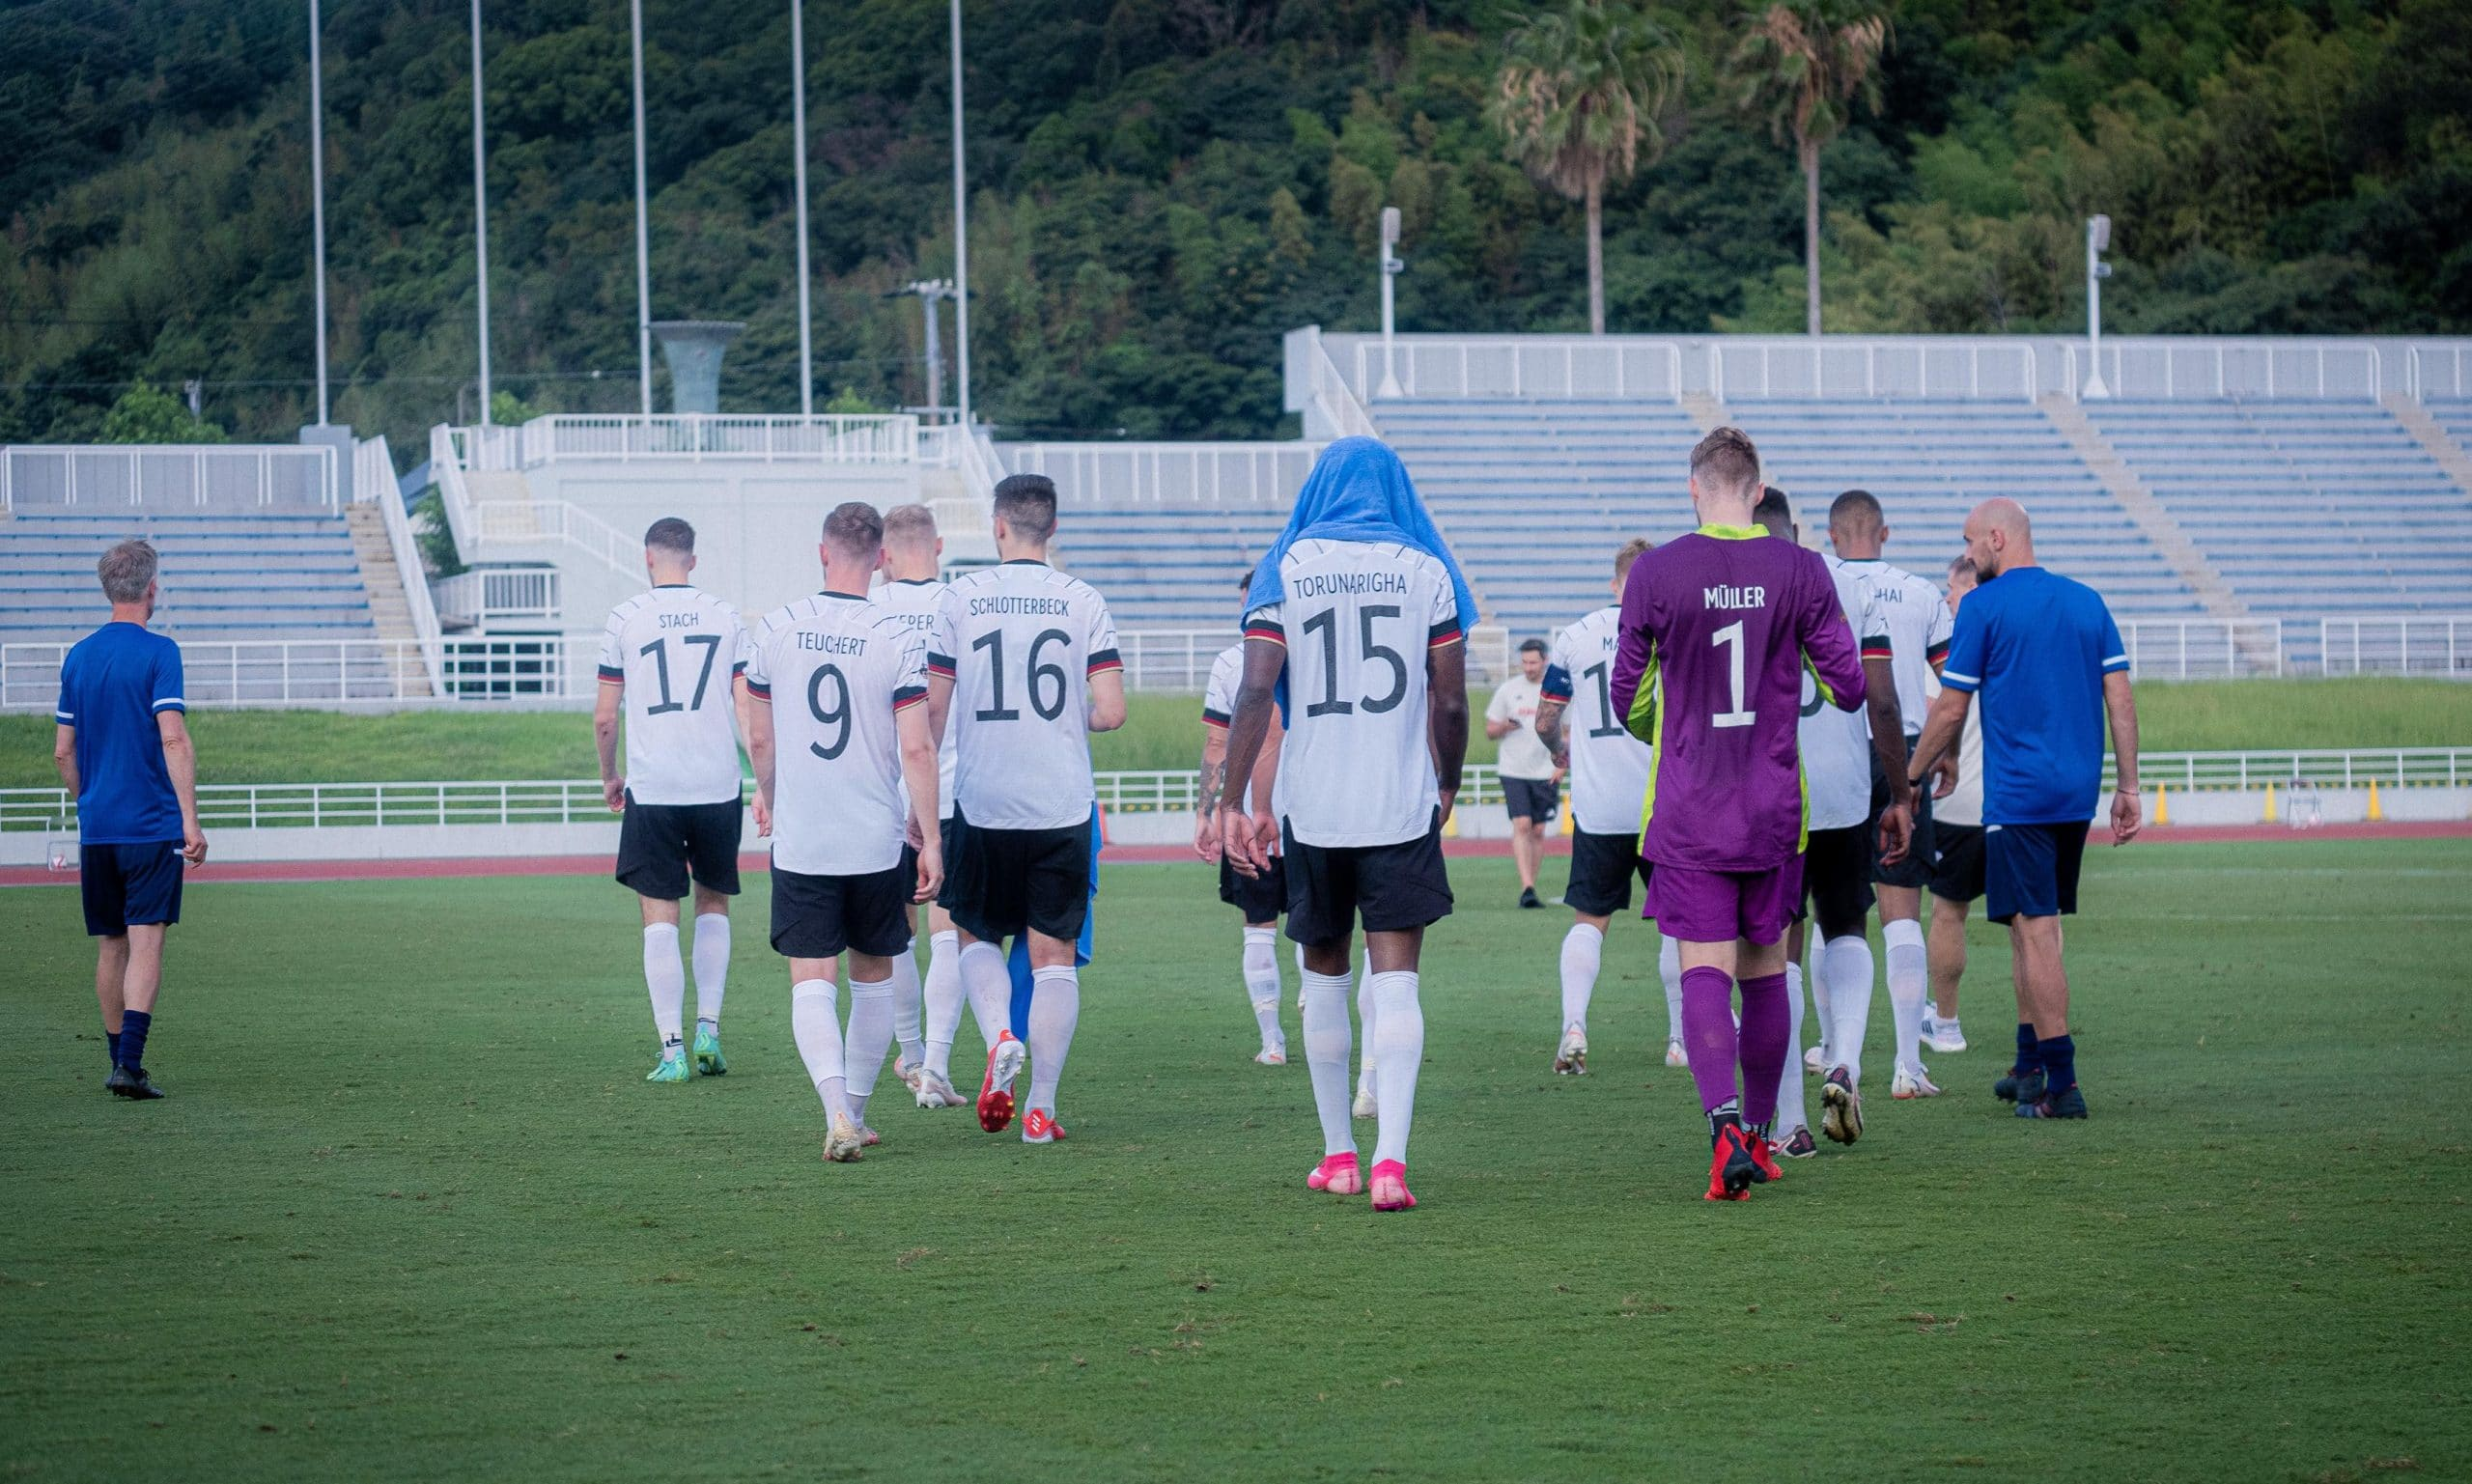 Tokyo 2020: Germany's  Men's Football Team  Walk Off Pitch After  Torunarigha Allegedly Racially Abused